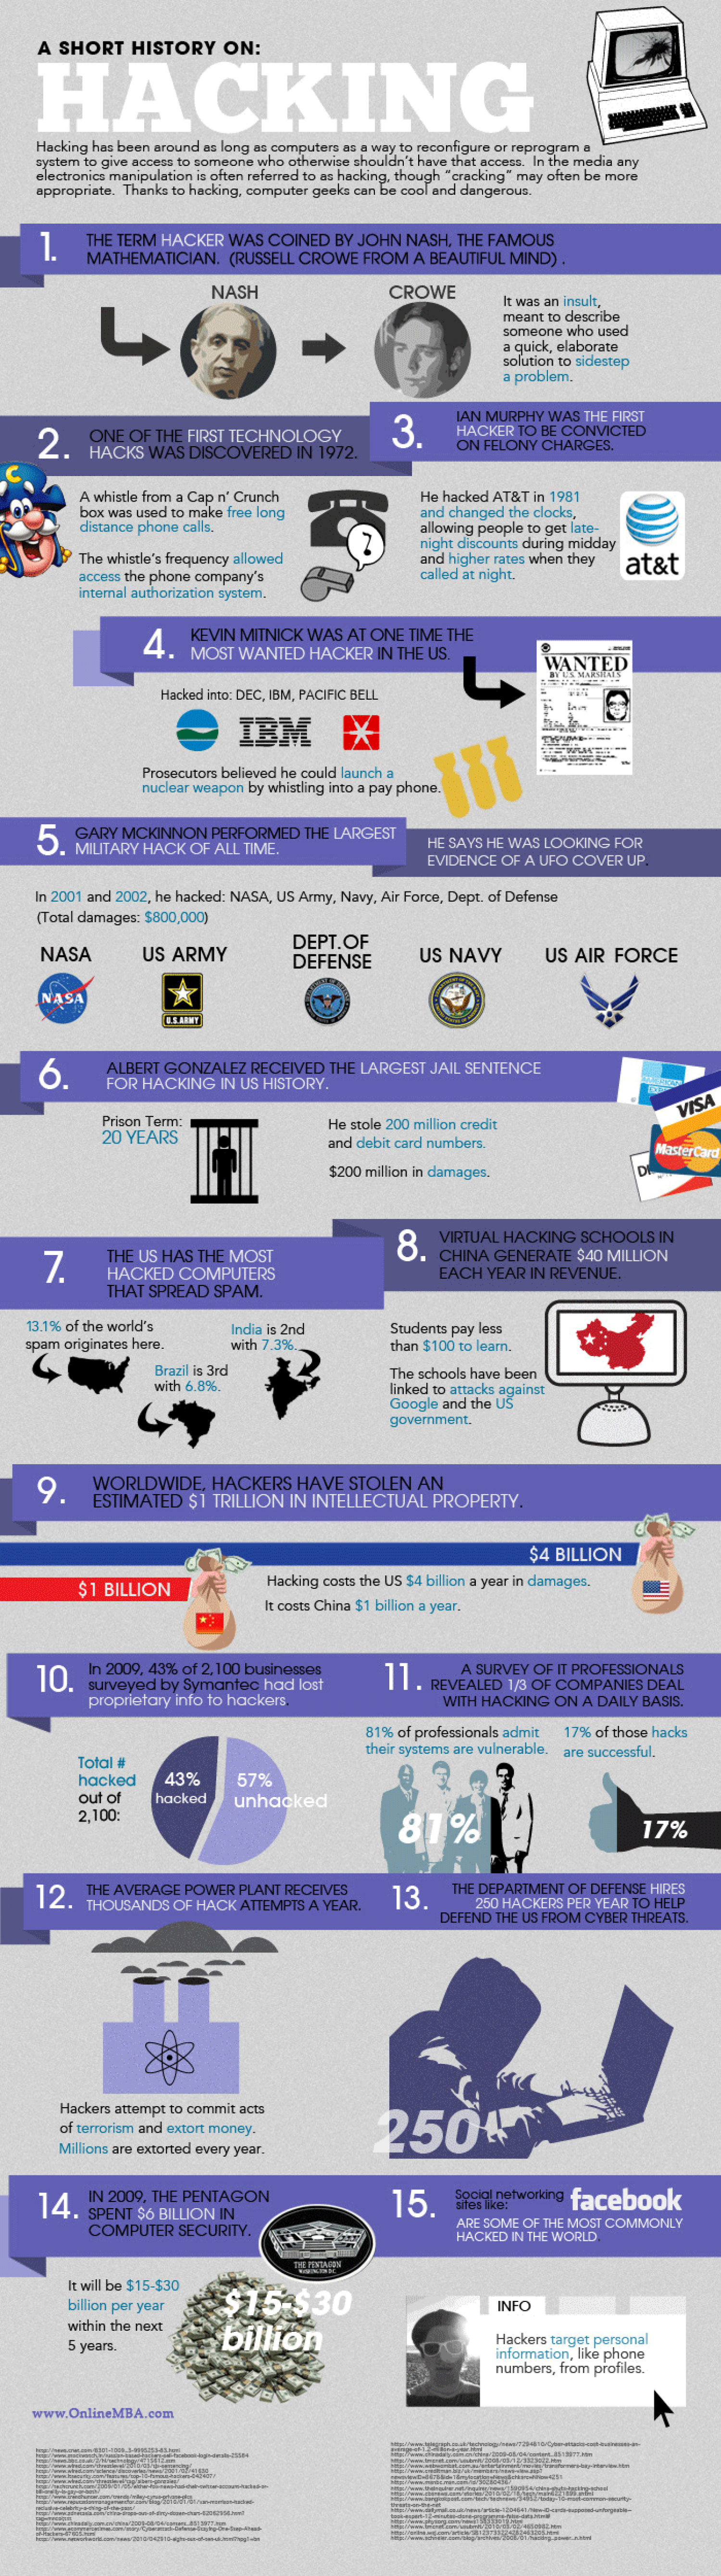 A Short History on Hacking Infographic